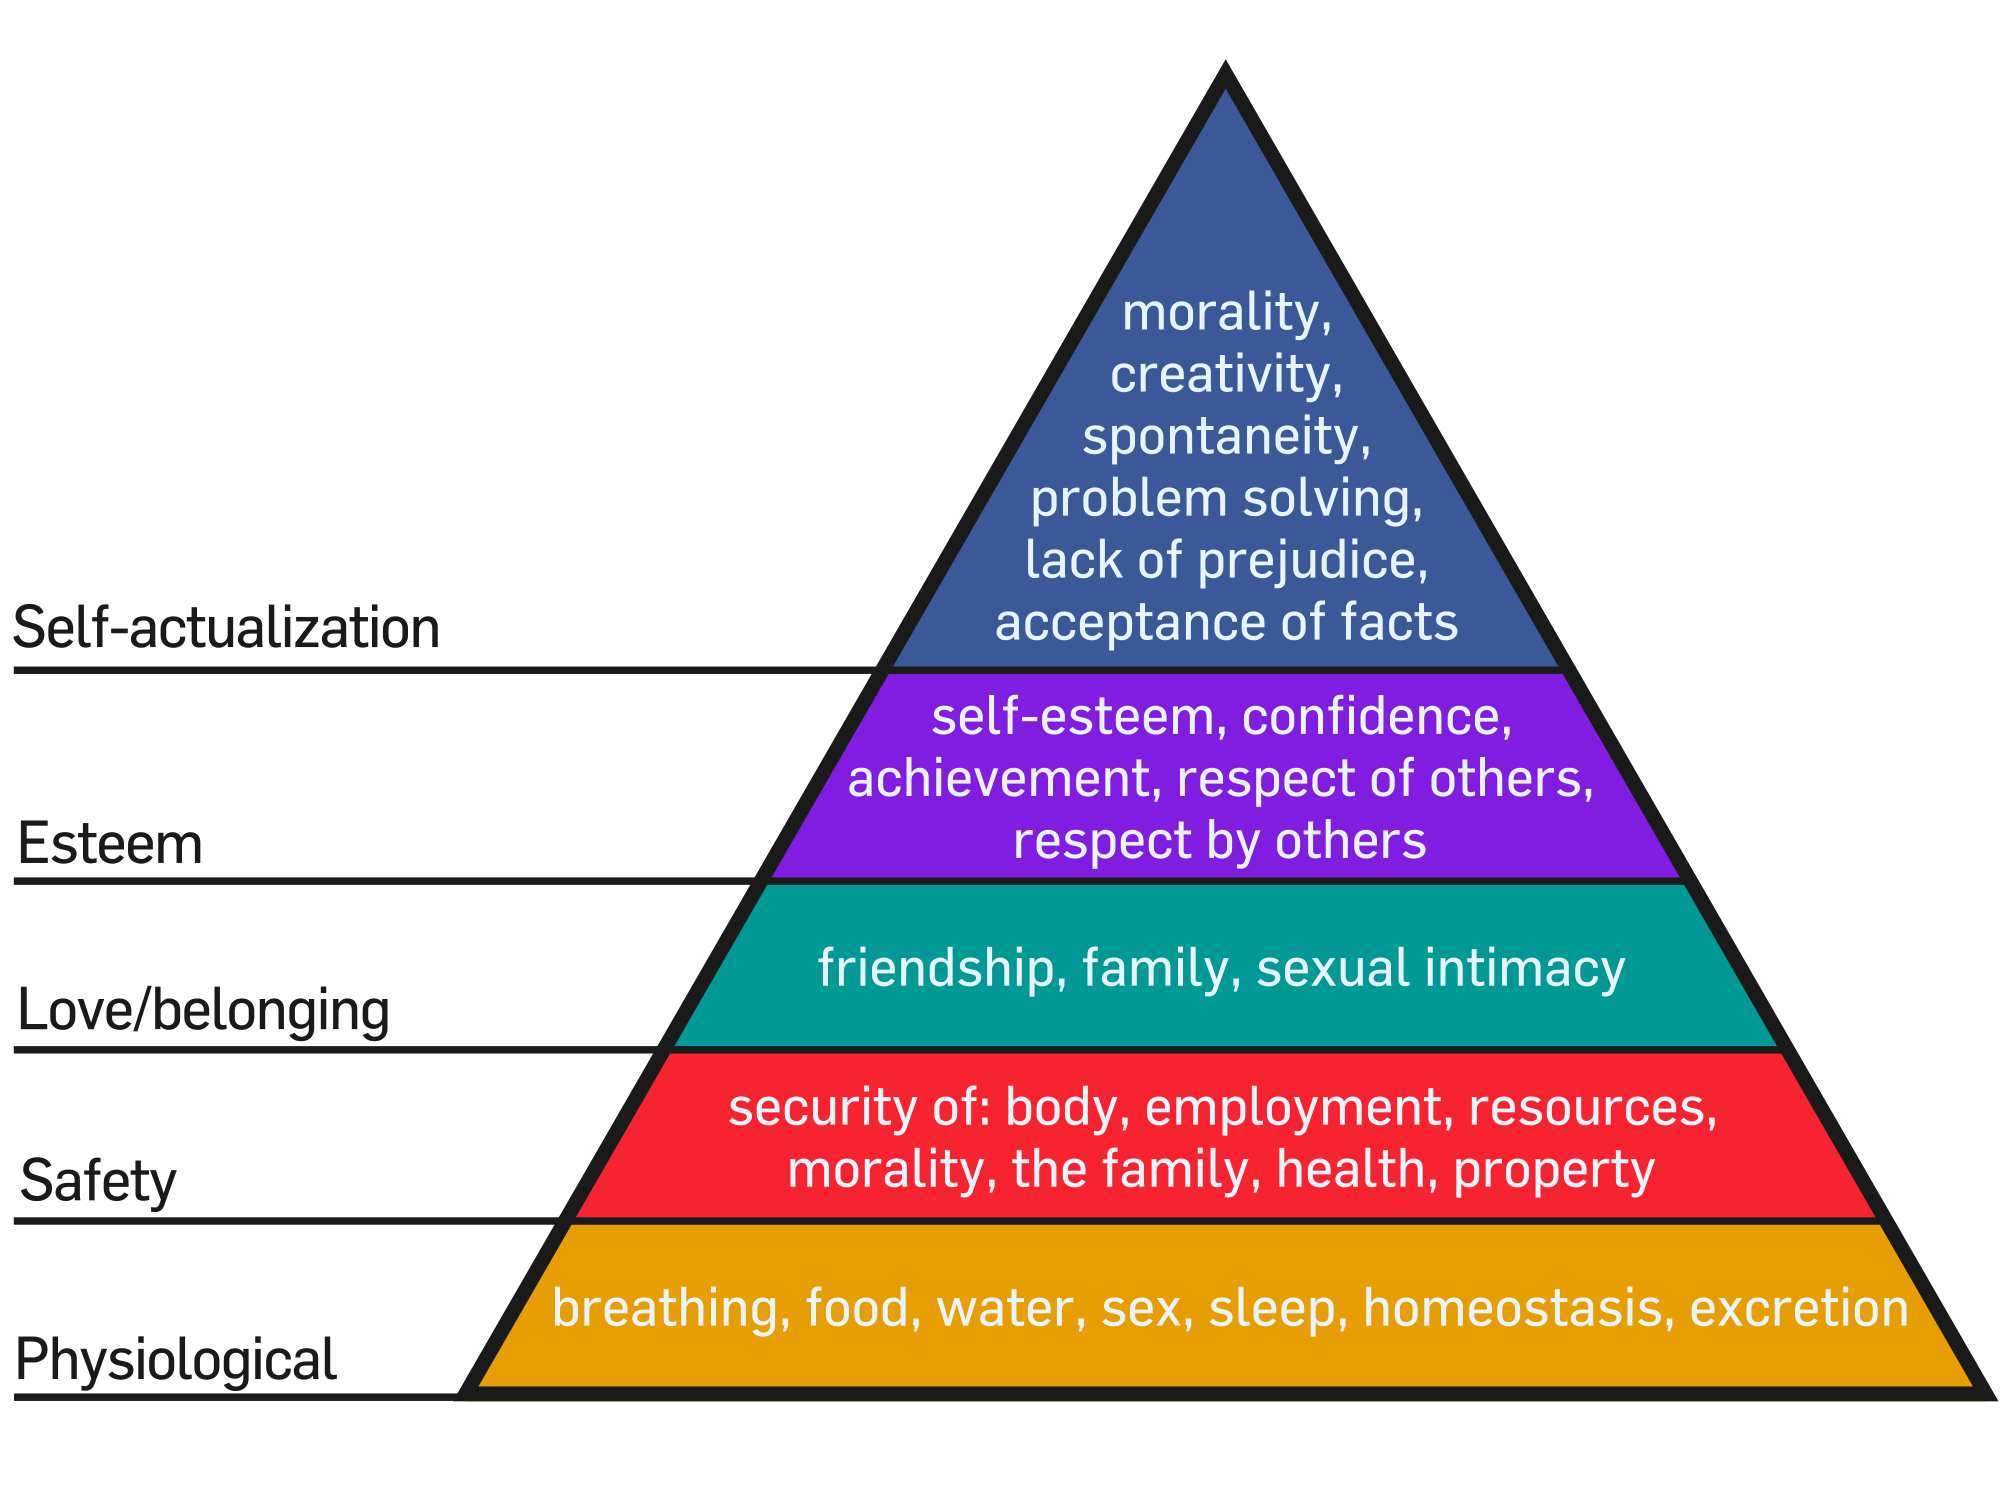 A pyramid illustration showcasing Maslow Hierarchy of Needs.